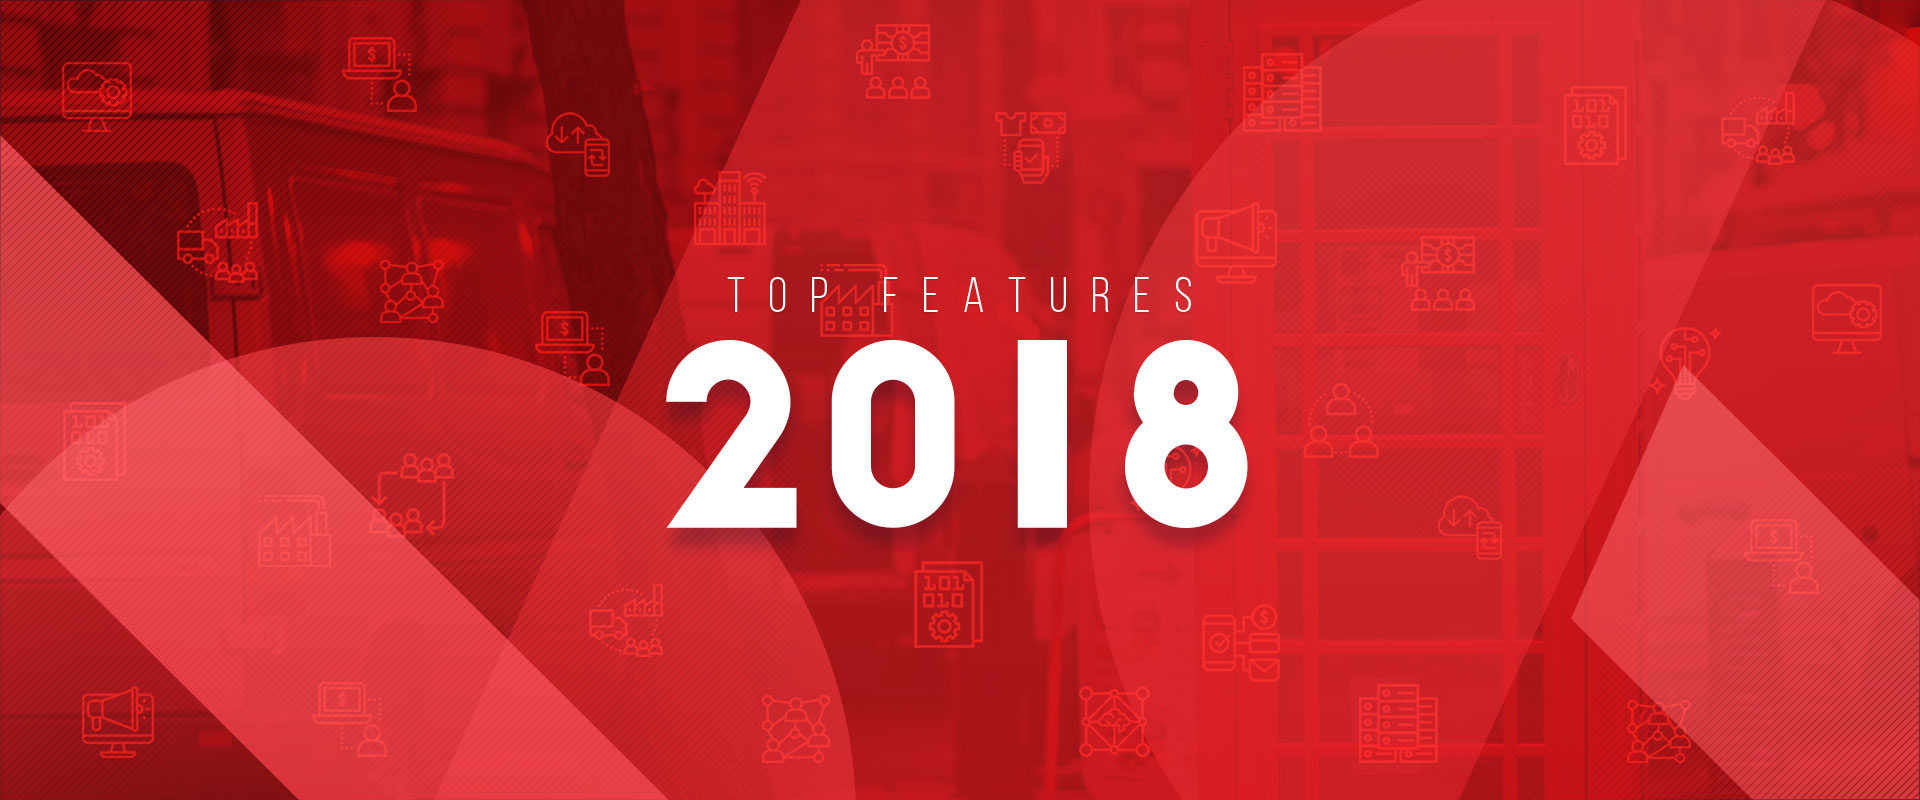 Top Features of the Year